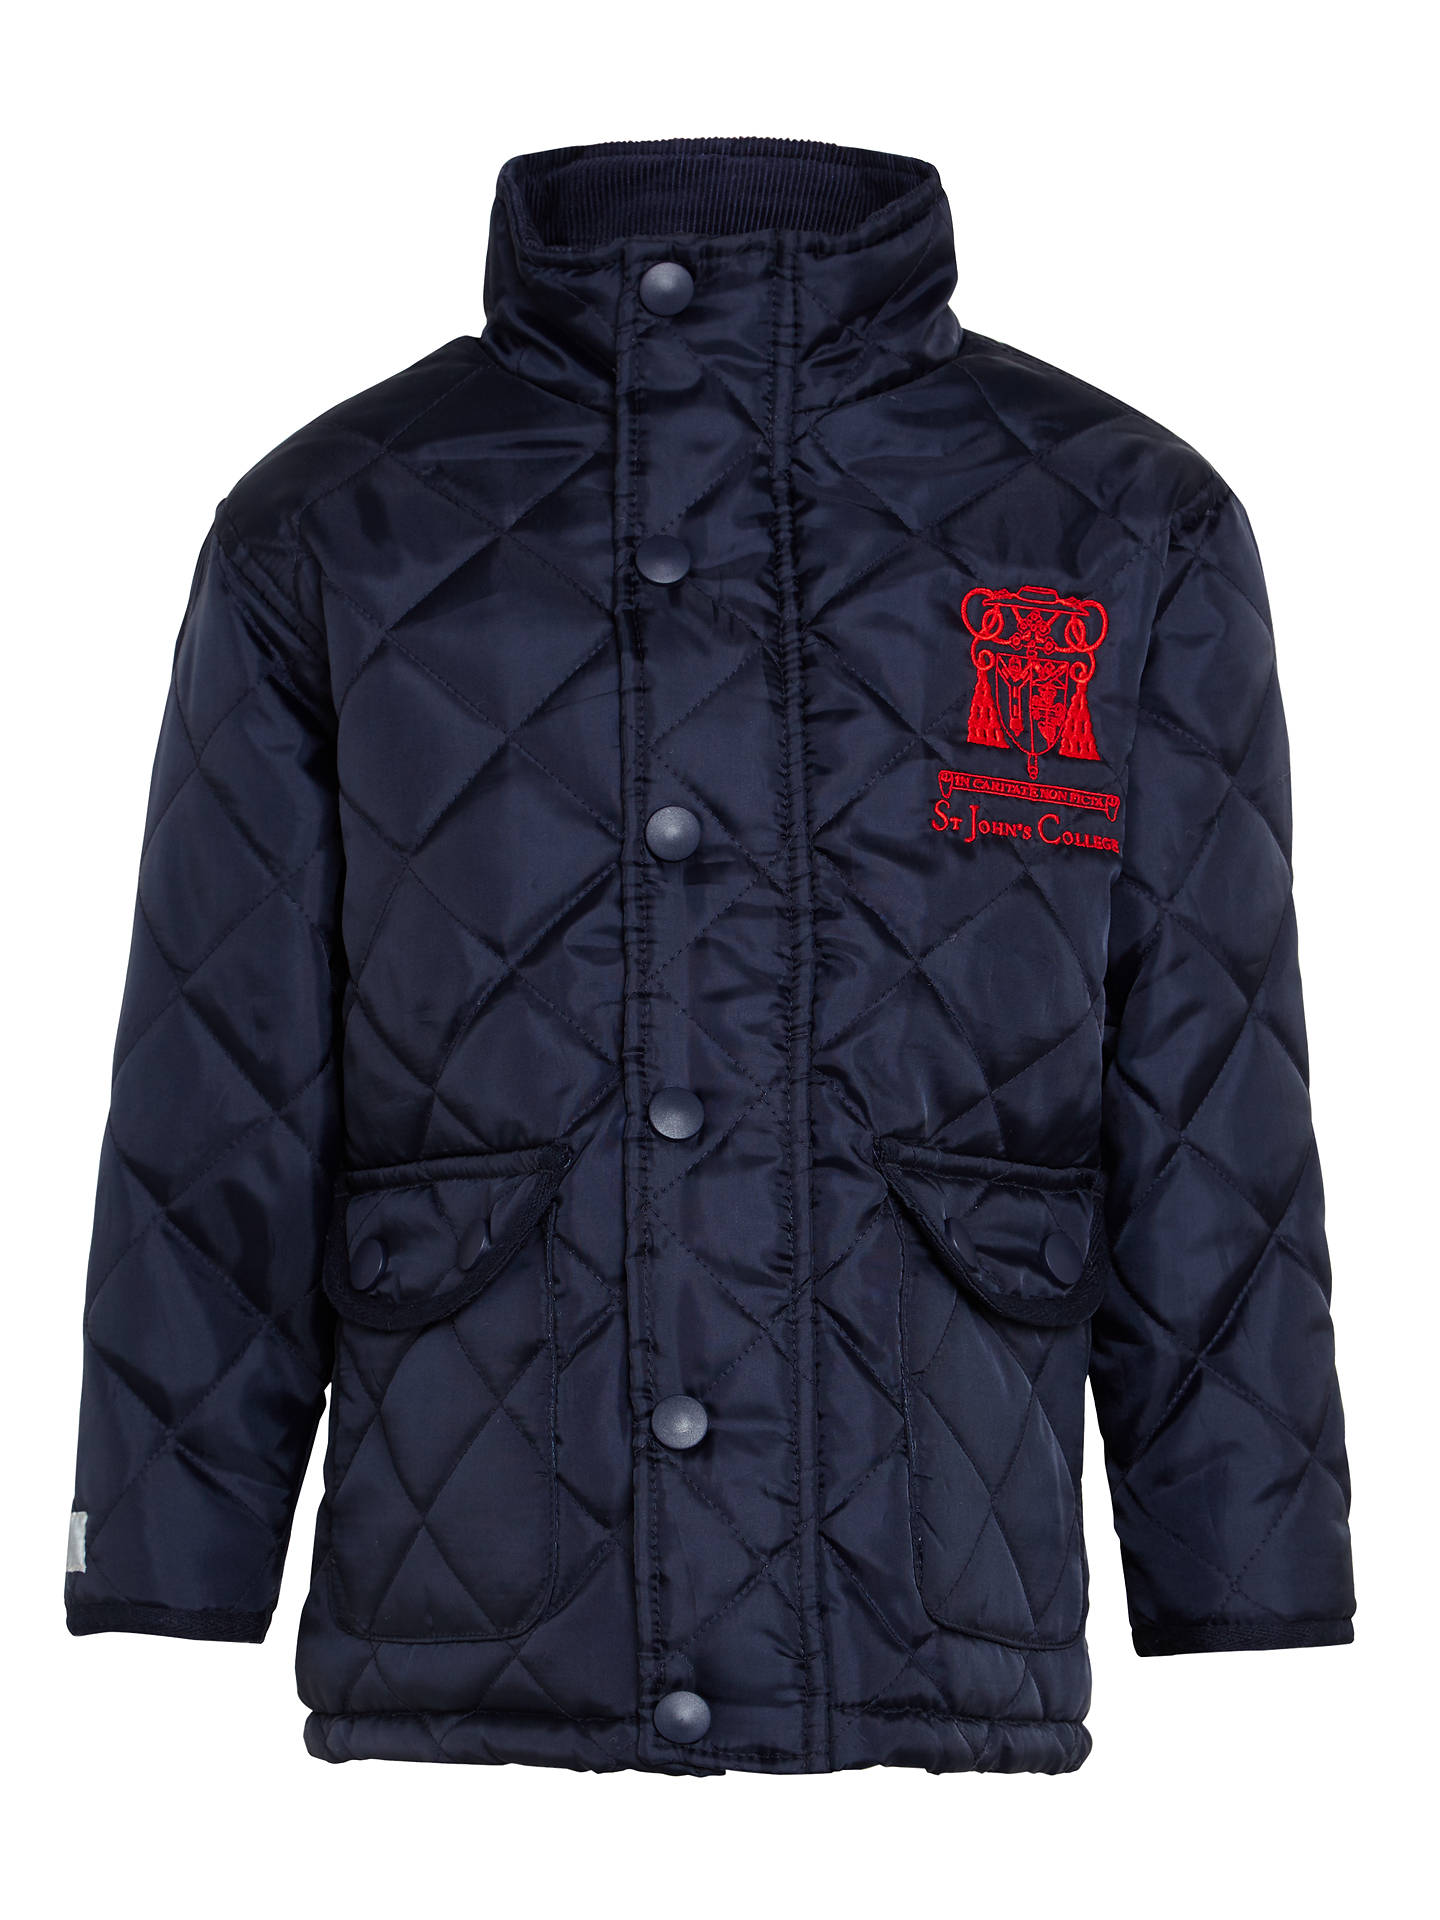 Buy St John's College Coat, Navy, XS Online at johnlewis.com